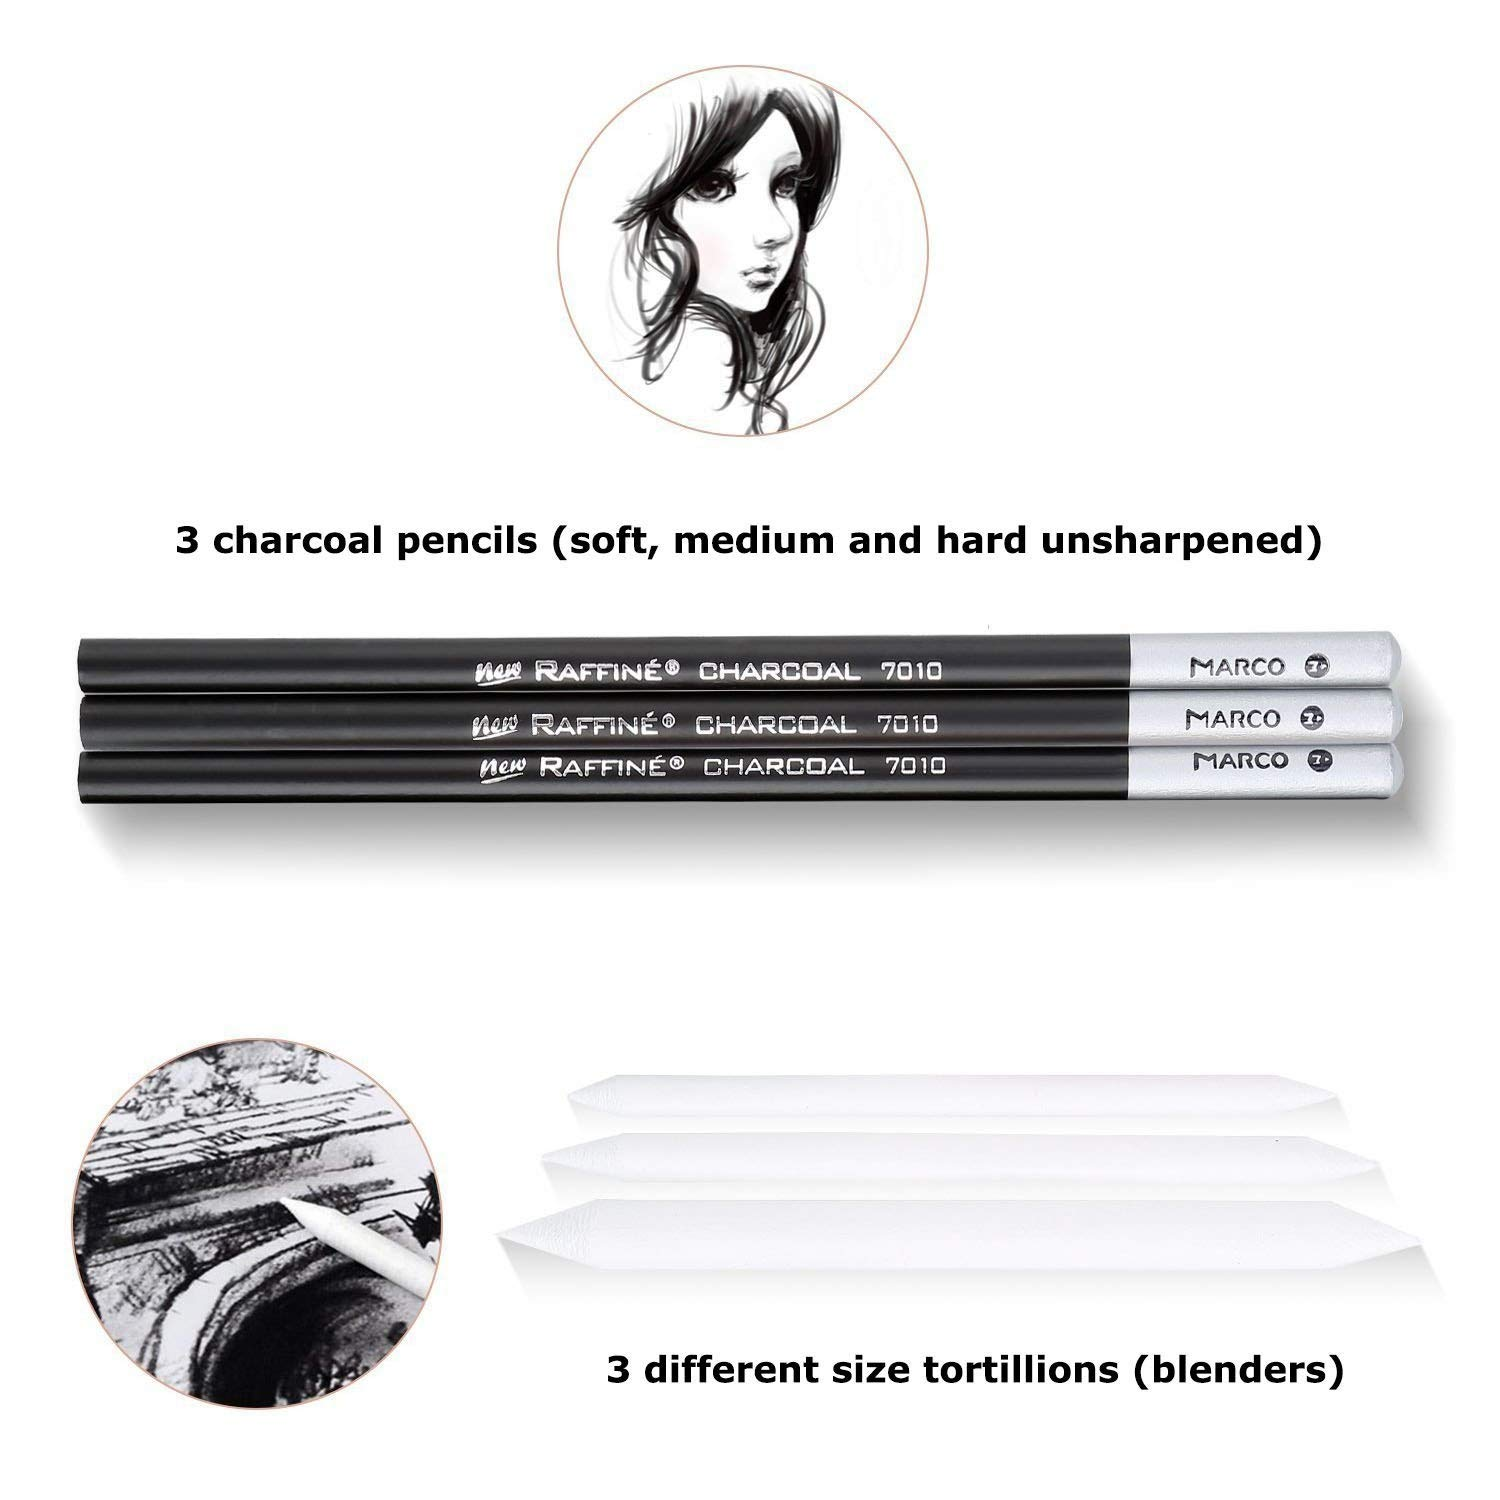 Sketch Pencil Set,Morkia 18pcs Sketching Pencil with 3 Charcoal Pencil 2 Eraser 3 Paper Pens 1 Pencil Sharpener 1 Pencil Extender with Roll Up Canvas Carry Pouch Set Art Craft 29pcs in Total for Beginners Artist Student